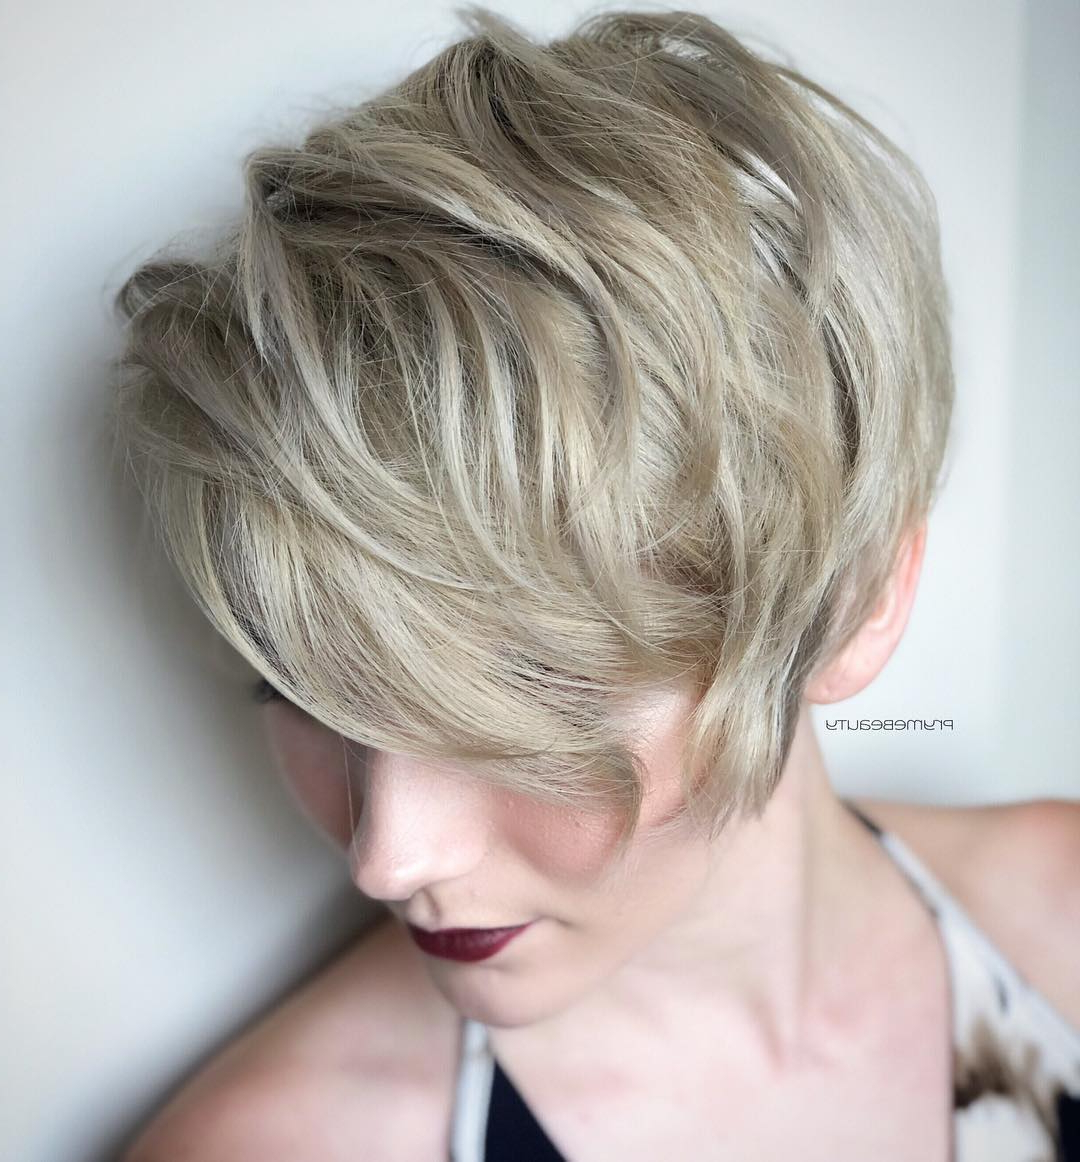 Top 10 Trendy, Low Maintenance Short Layered Hairstyles For 2018  2019 In Easy Maintenance Short Hairstyles (View 25 of 25)